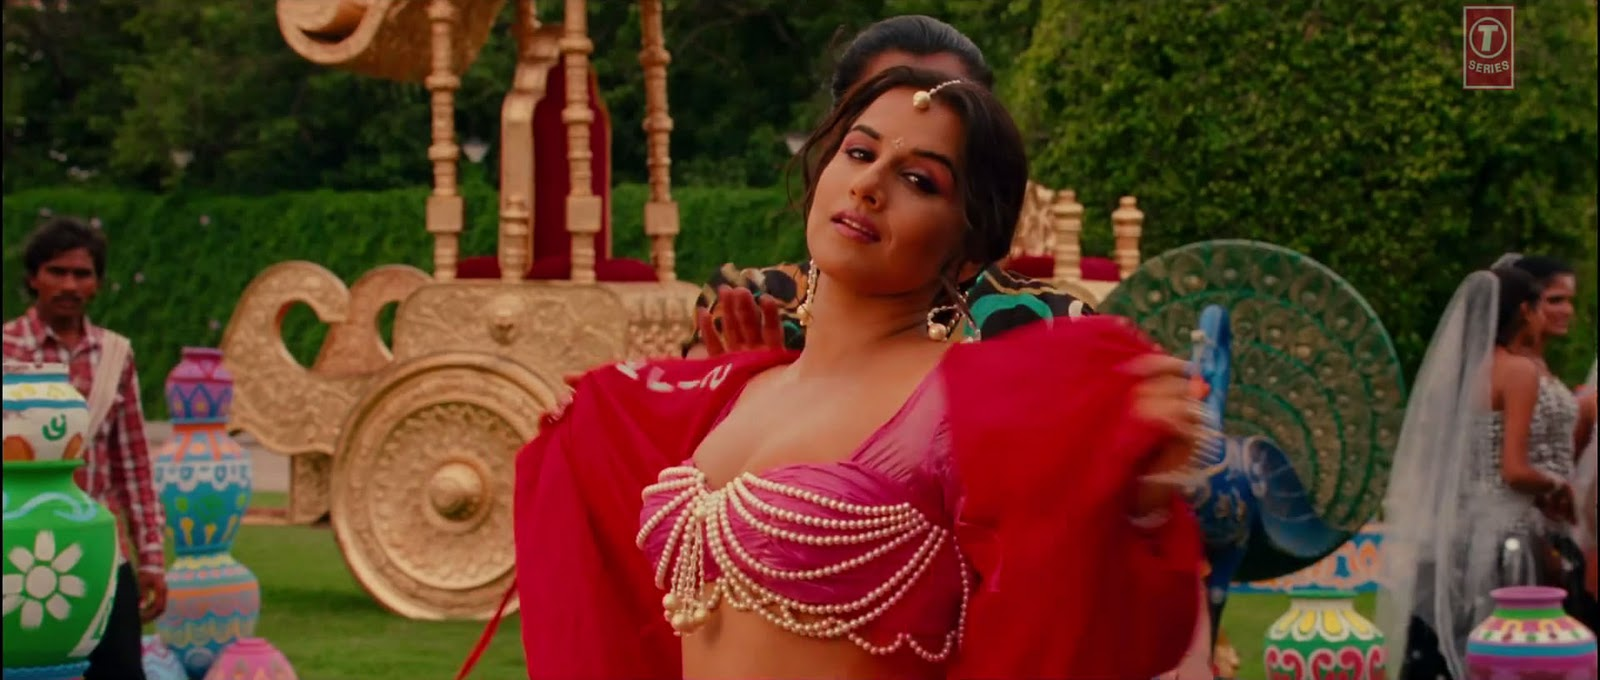 The Dirty Picture (2011) All Video Song Download 720P HD Mediafire Link